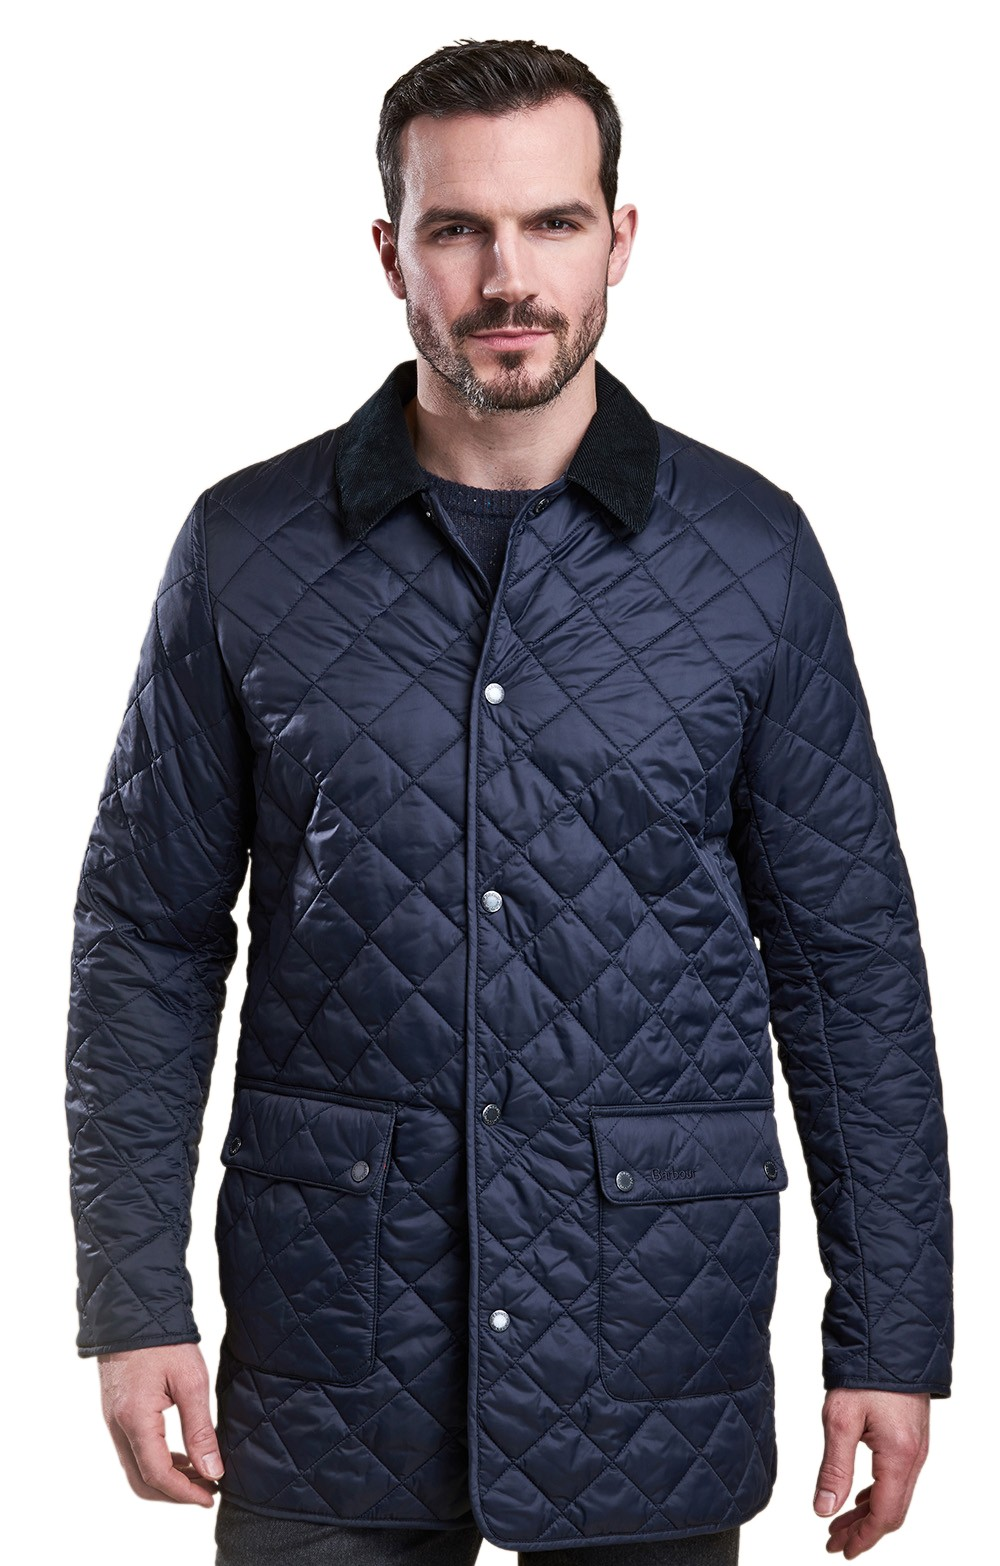 5edd1b2e09926 Barbour Thurland Quilted Jacket | Barbour | House Of Bruar